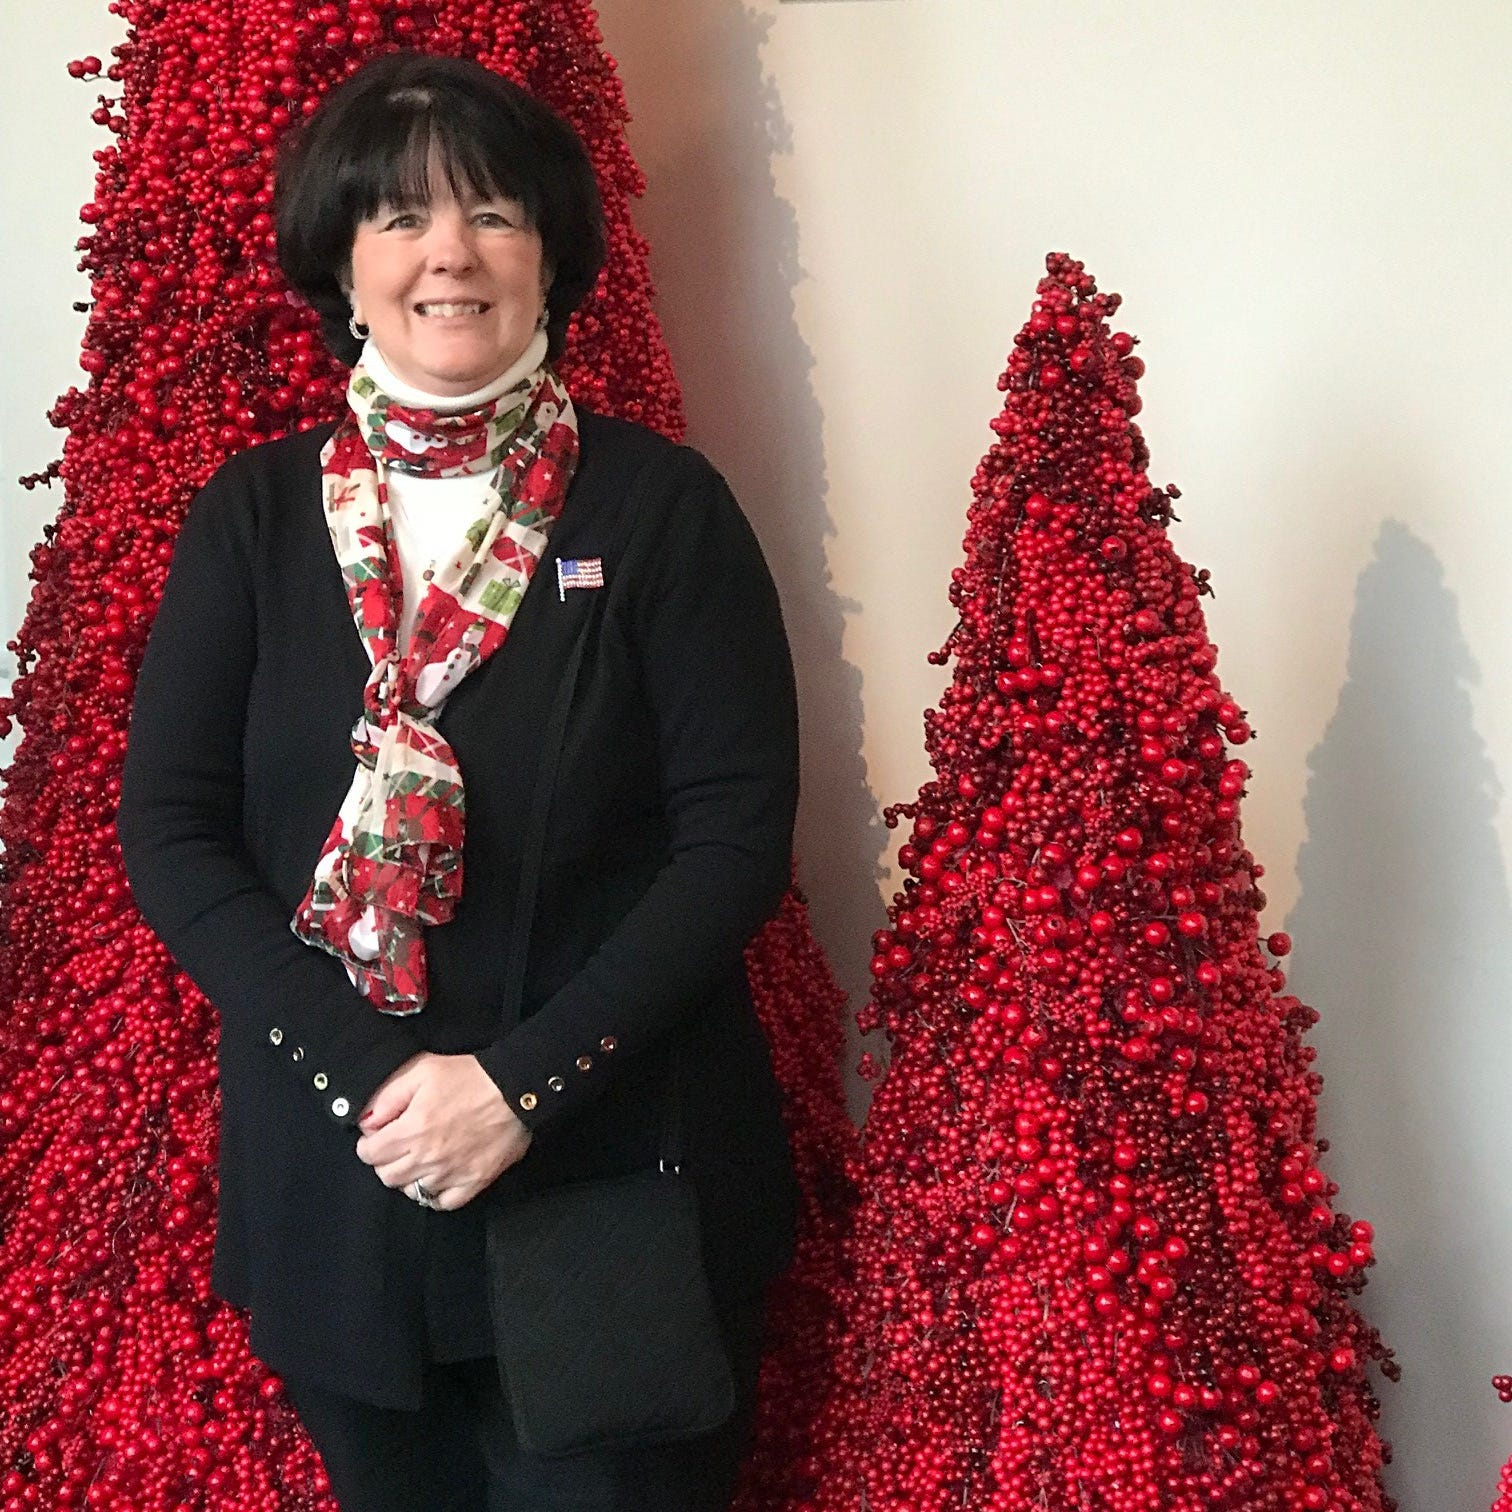 Bangert: Lafayette Gold Star Mom helps decorate White House for Christmas